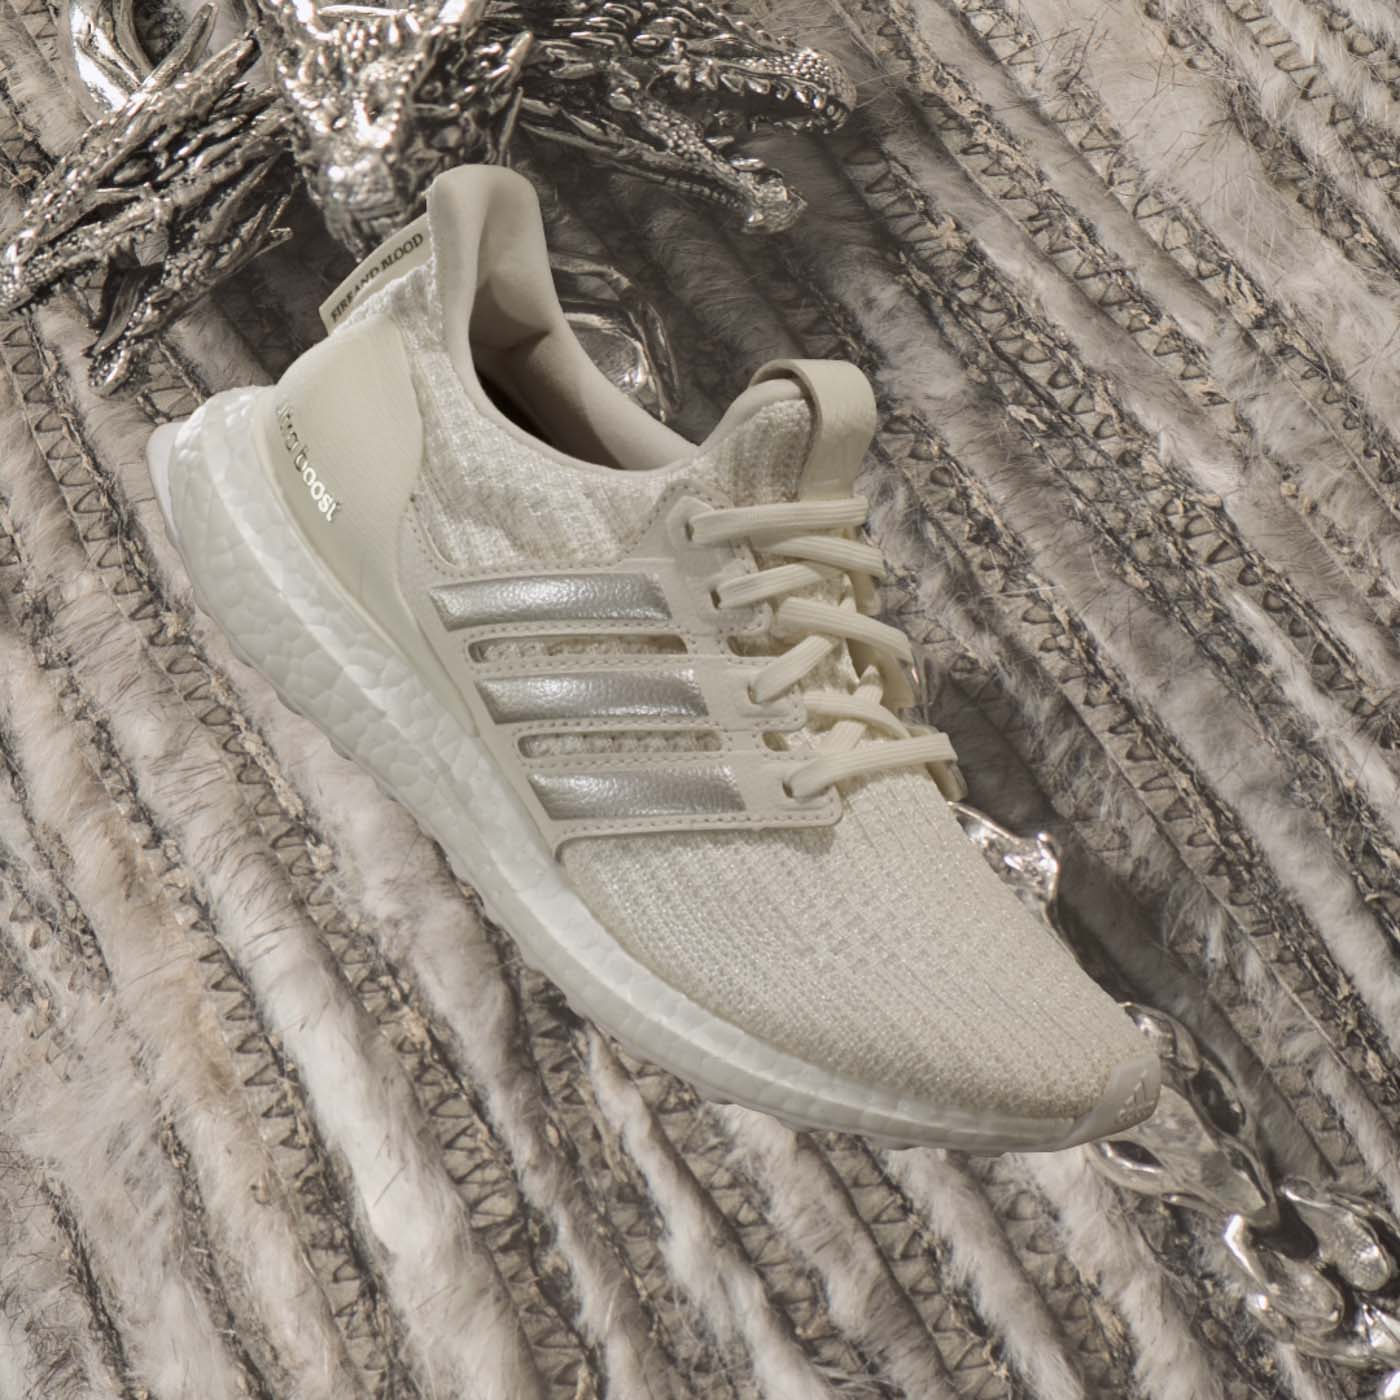 LOOK: The Adidas x Game of Thrones collab drops March 22